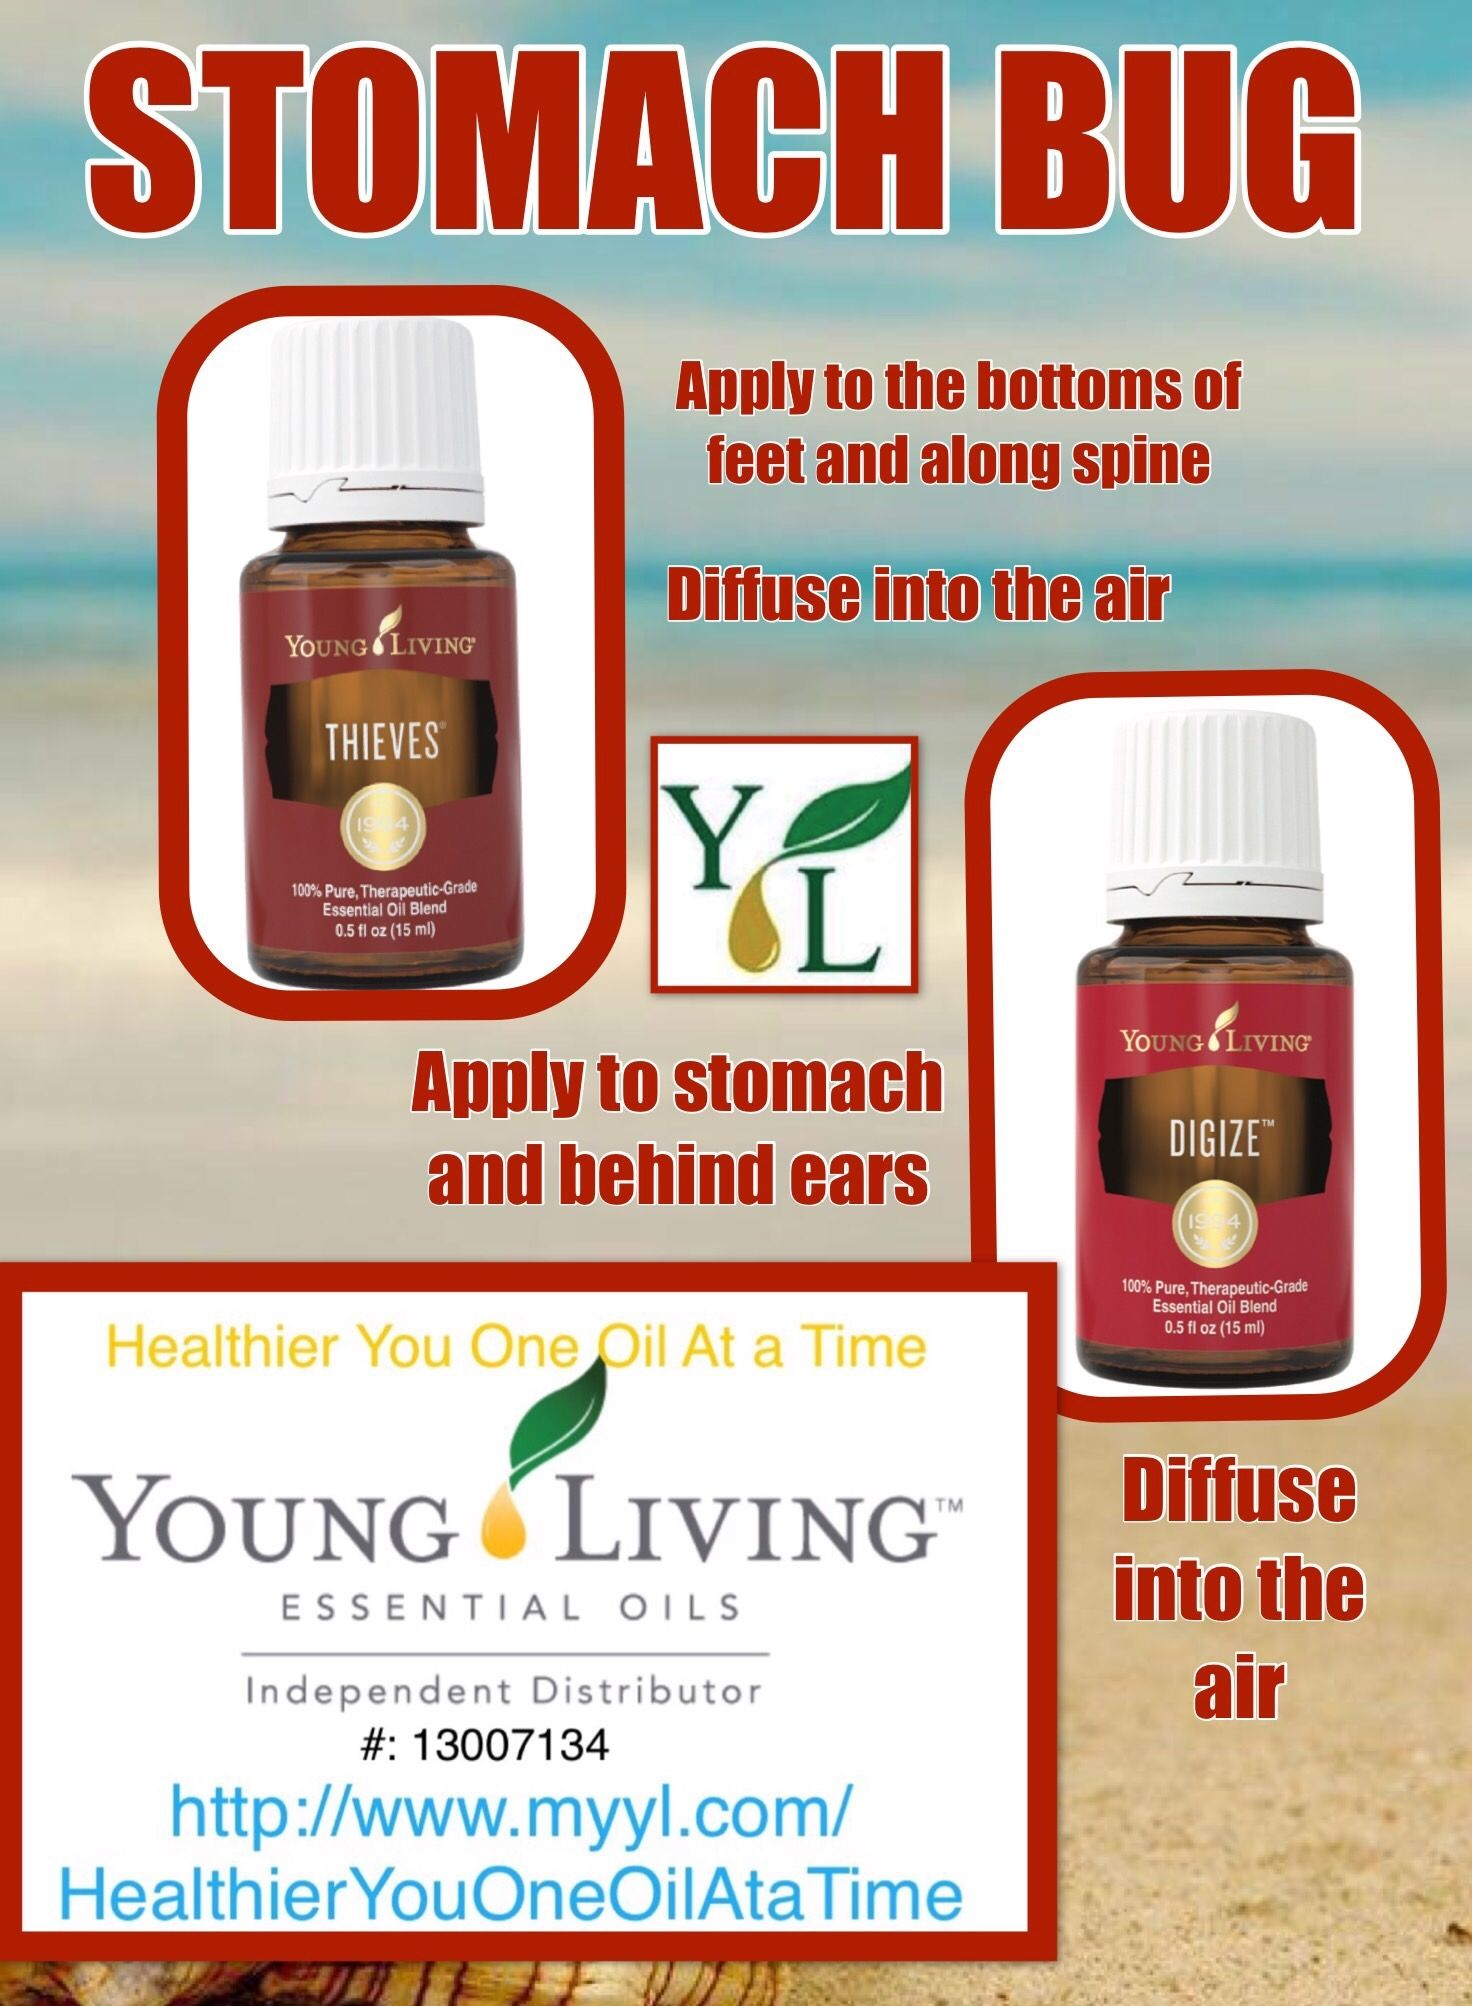 Essential Oils For Stomach Bug Thieves And Digize Diffuse Into The Air Essential Oil For Stomach Bug Essential Oil Diffuser Recipes Young Living Oils Recipes